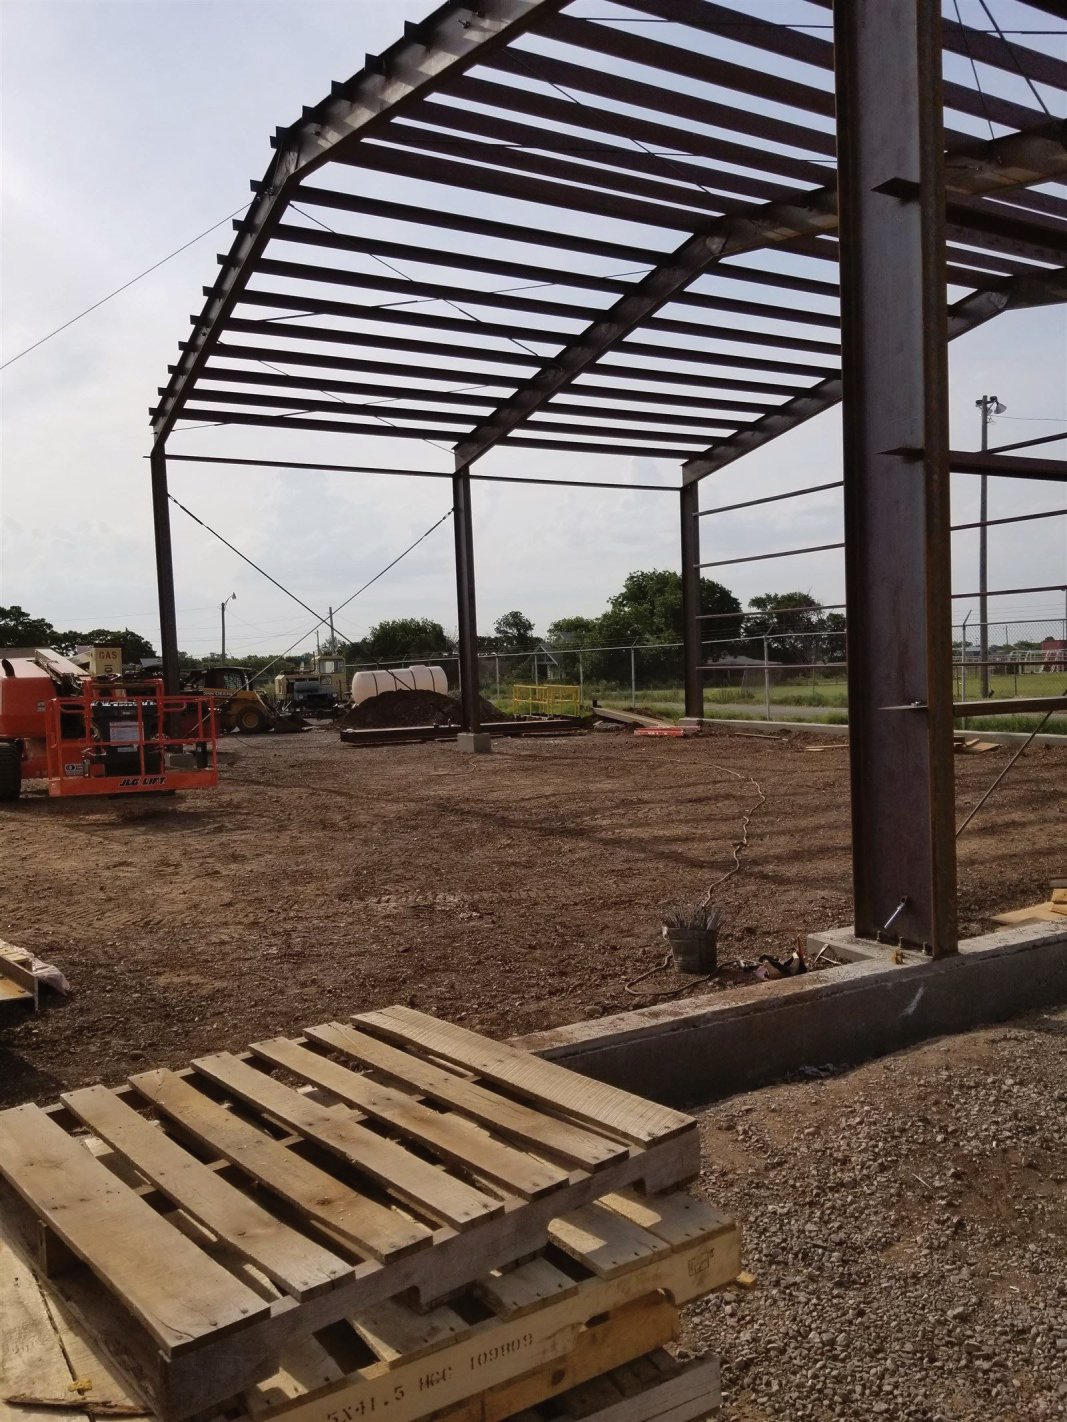 : Getting the framing done